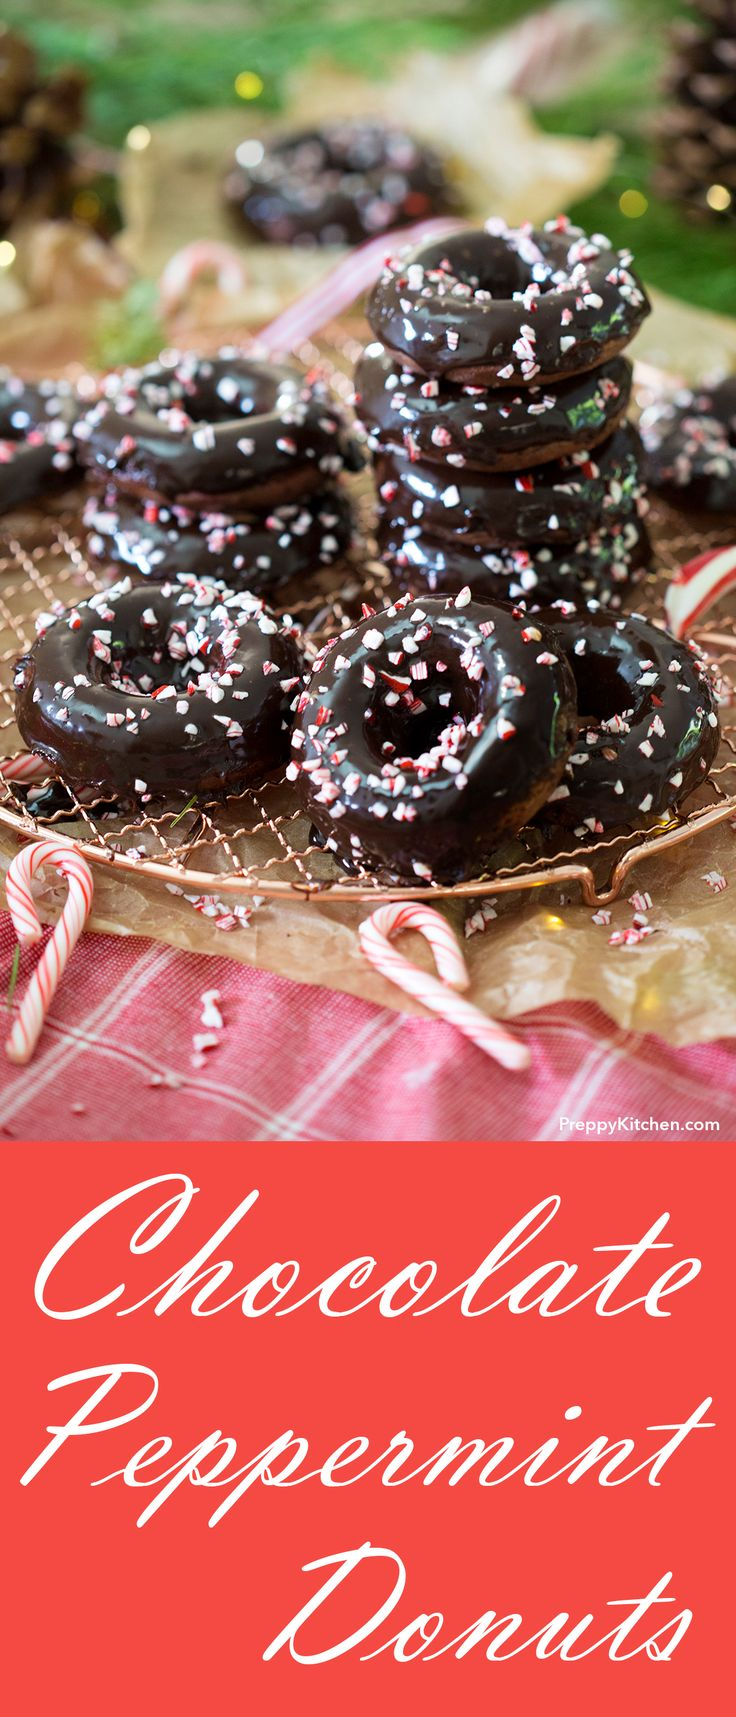 Baked Chocolate Peppermint Donuts - These donuts are moist and rich chocolate with a kiss of mint and covered in the most decadent ganache | Baked Donut Recipes, Holiday desserts #holiday #desserts #easybaking #peppermint #donuts How to make donuts at home.